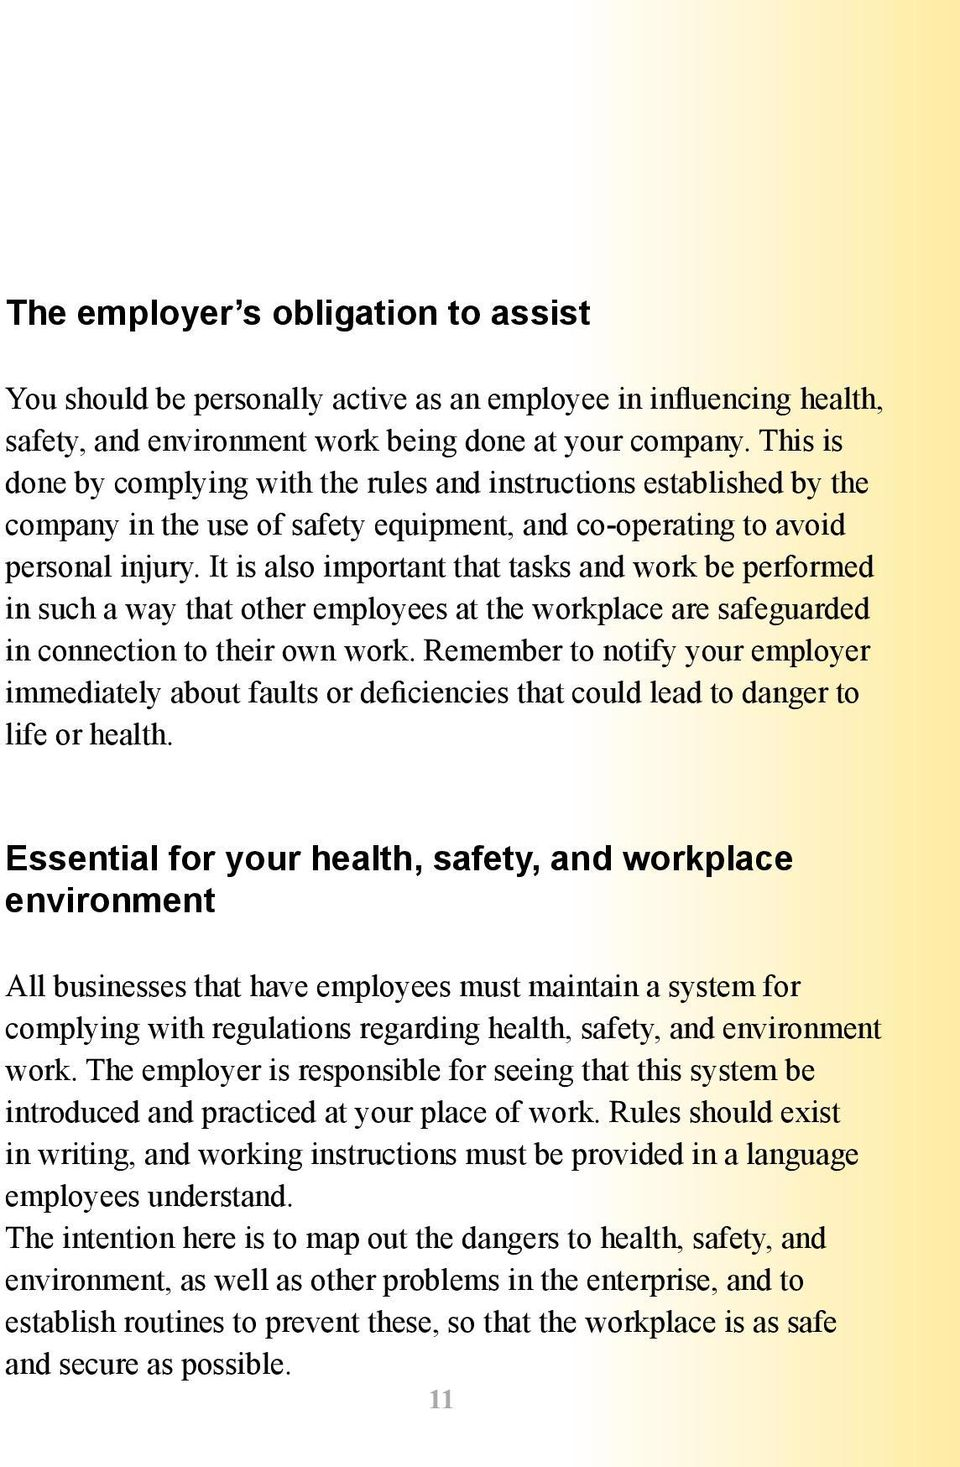 It is also important that tasks and work be performed in such a way that other employees at the workplace are safeguarded in connection to their own work.